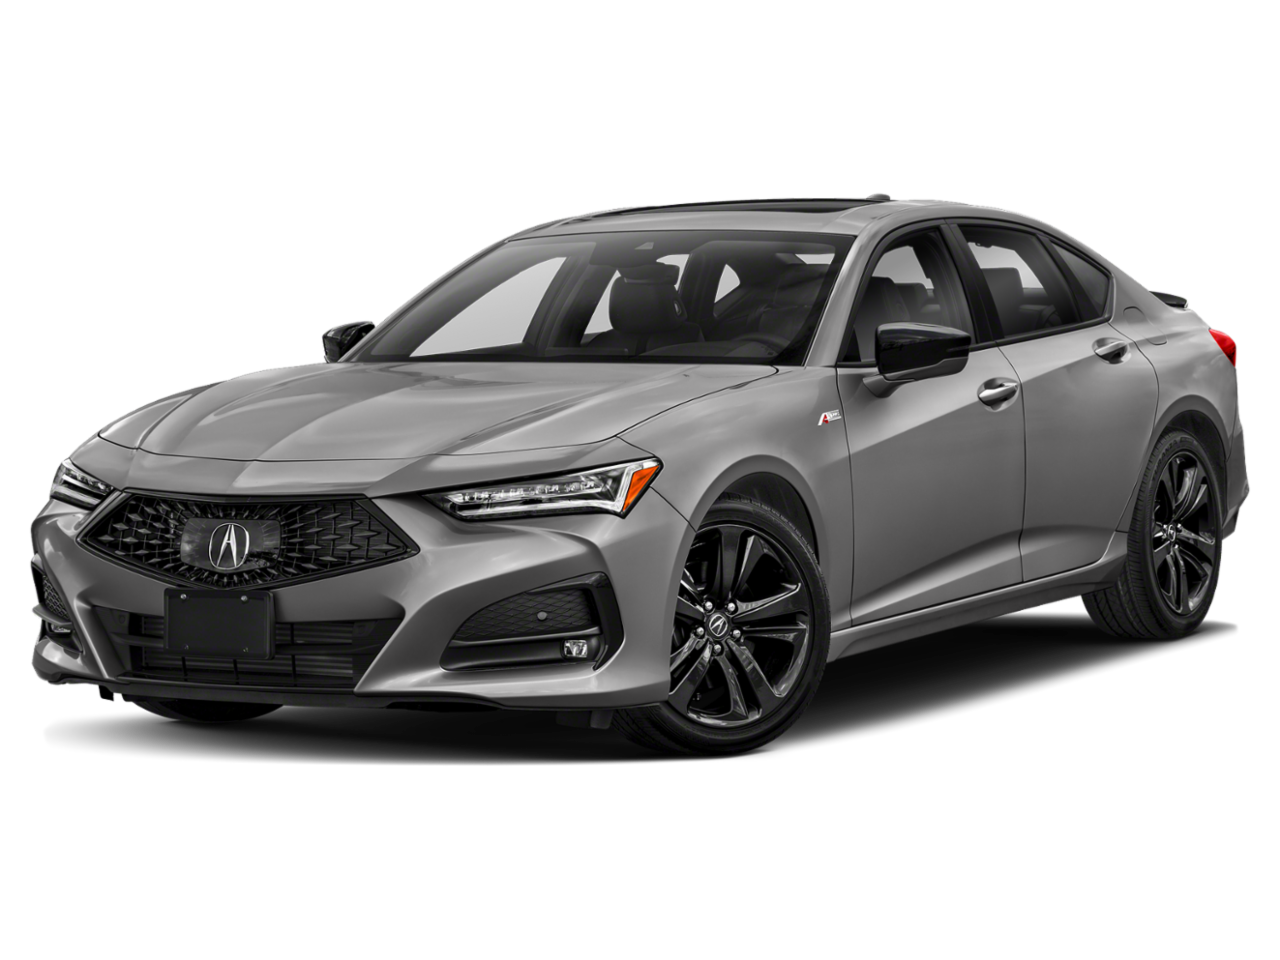 Acura 2021 TLX w/A-Spec Package